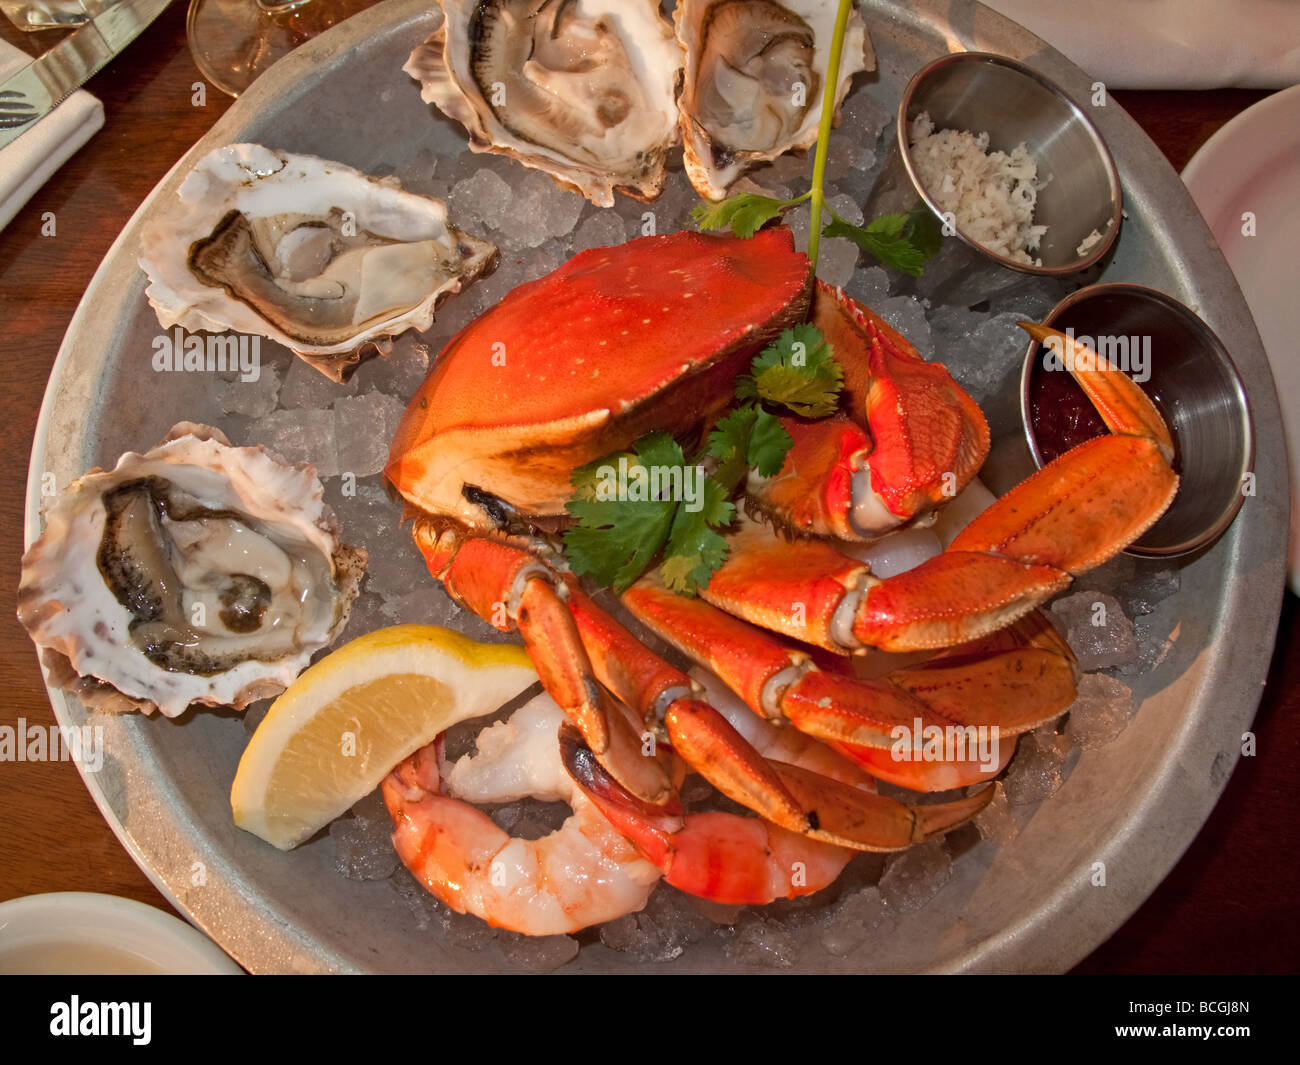 Fishplate Crab and oyster at Sand Bar on Granville Island Vancouver British Columbia Canada North America - Stock Image